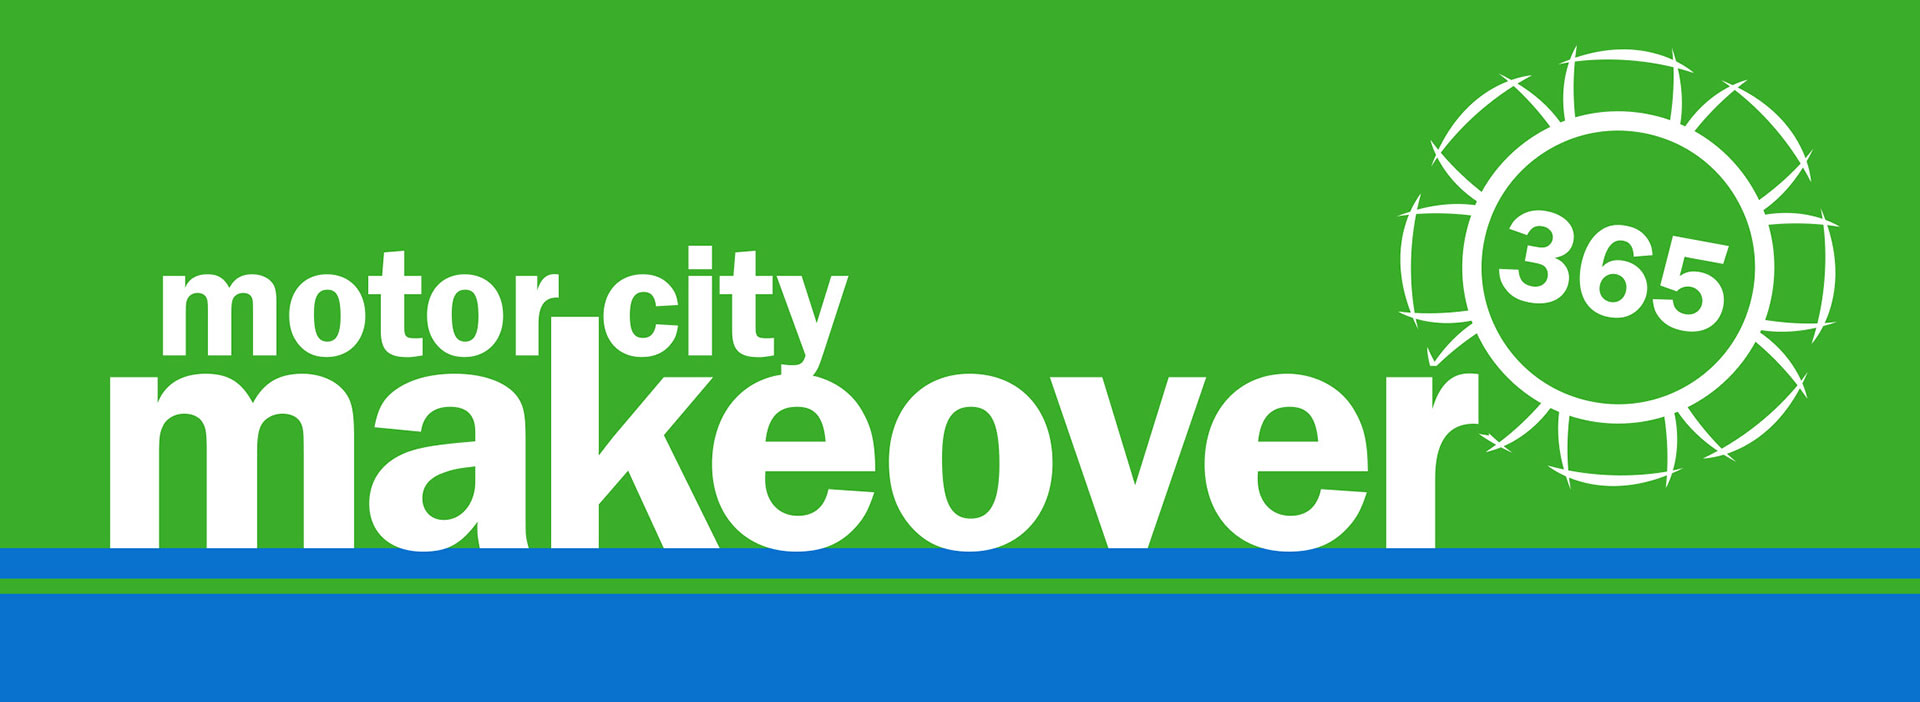 Motor City Makeover Logo